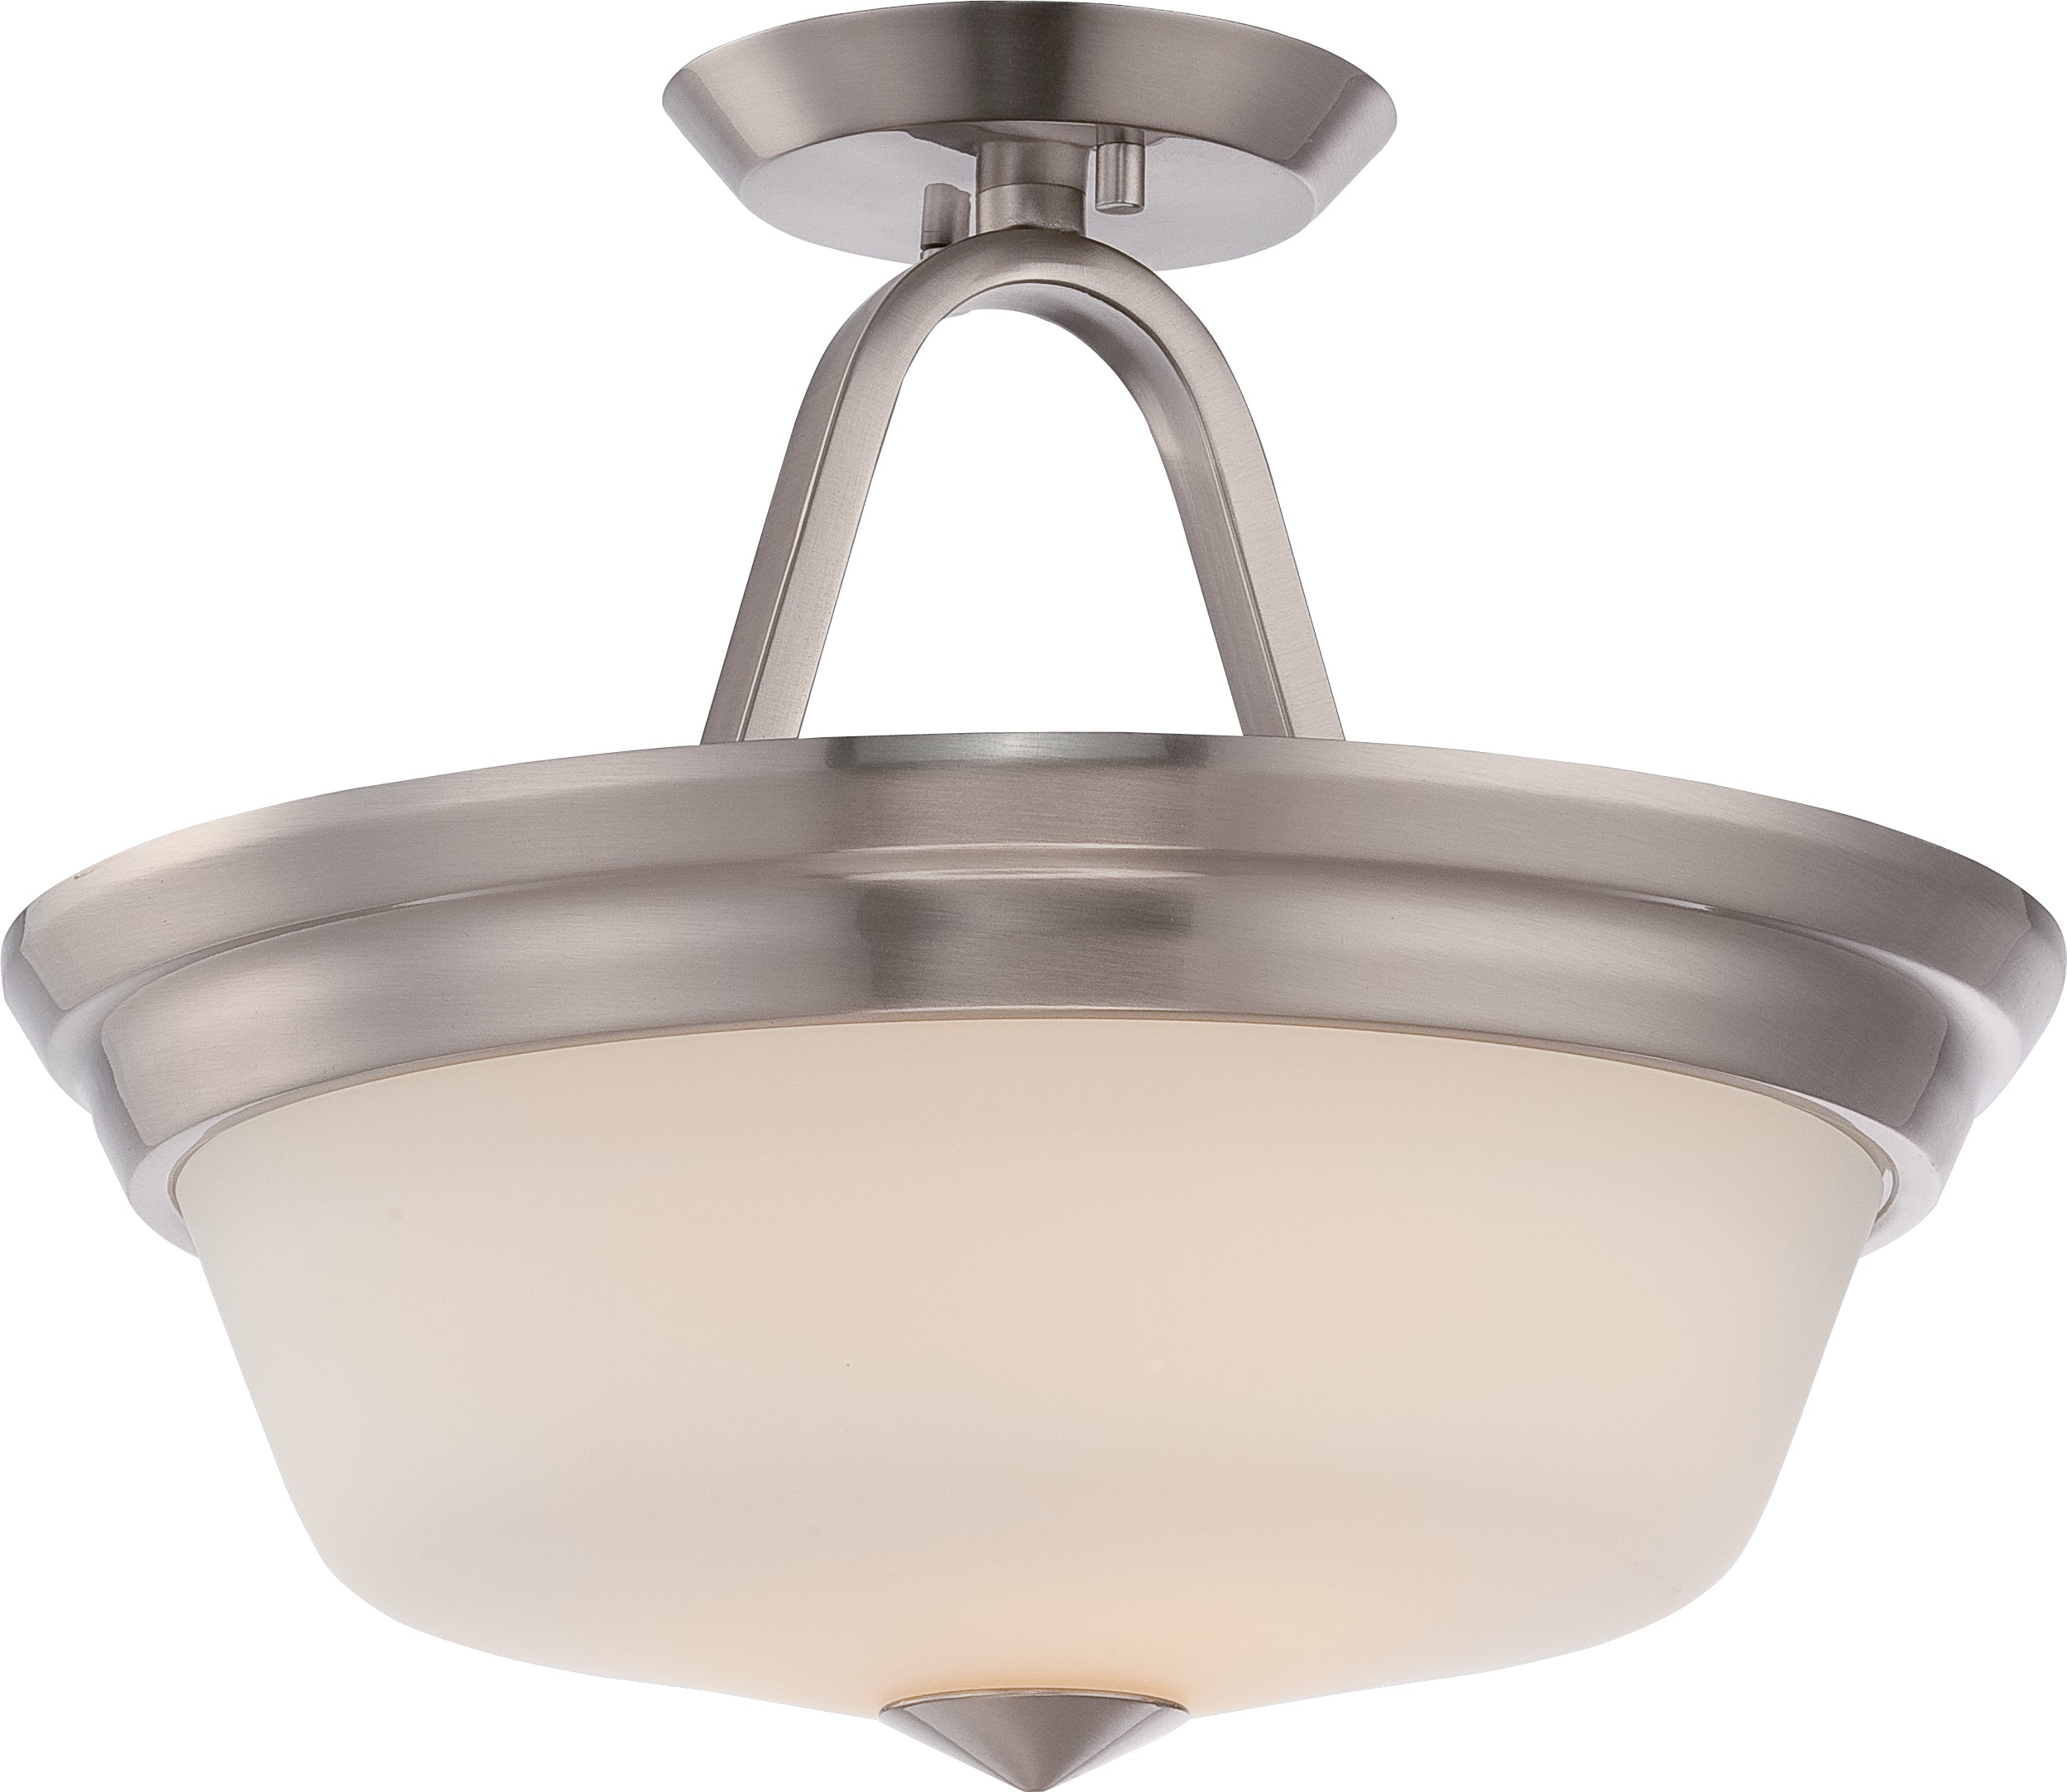 Nuvo Calvin 2-Light LED Semi Flush Mounted w/ Satin Glass in Brushed Nickel